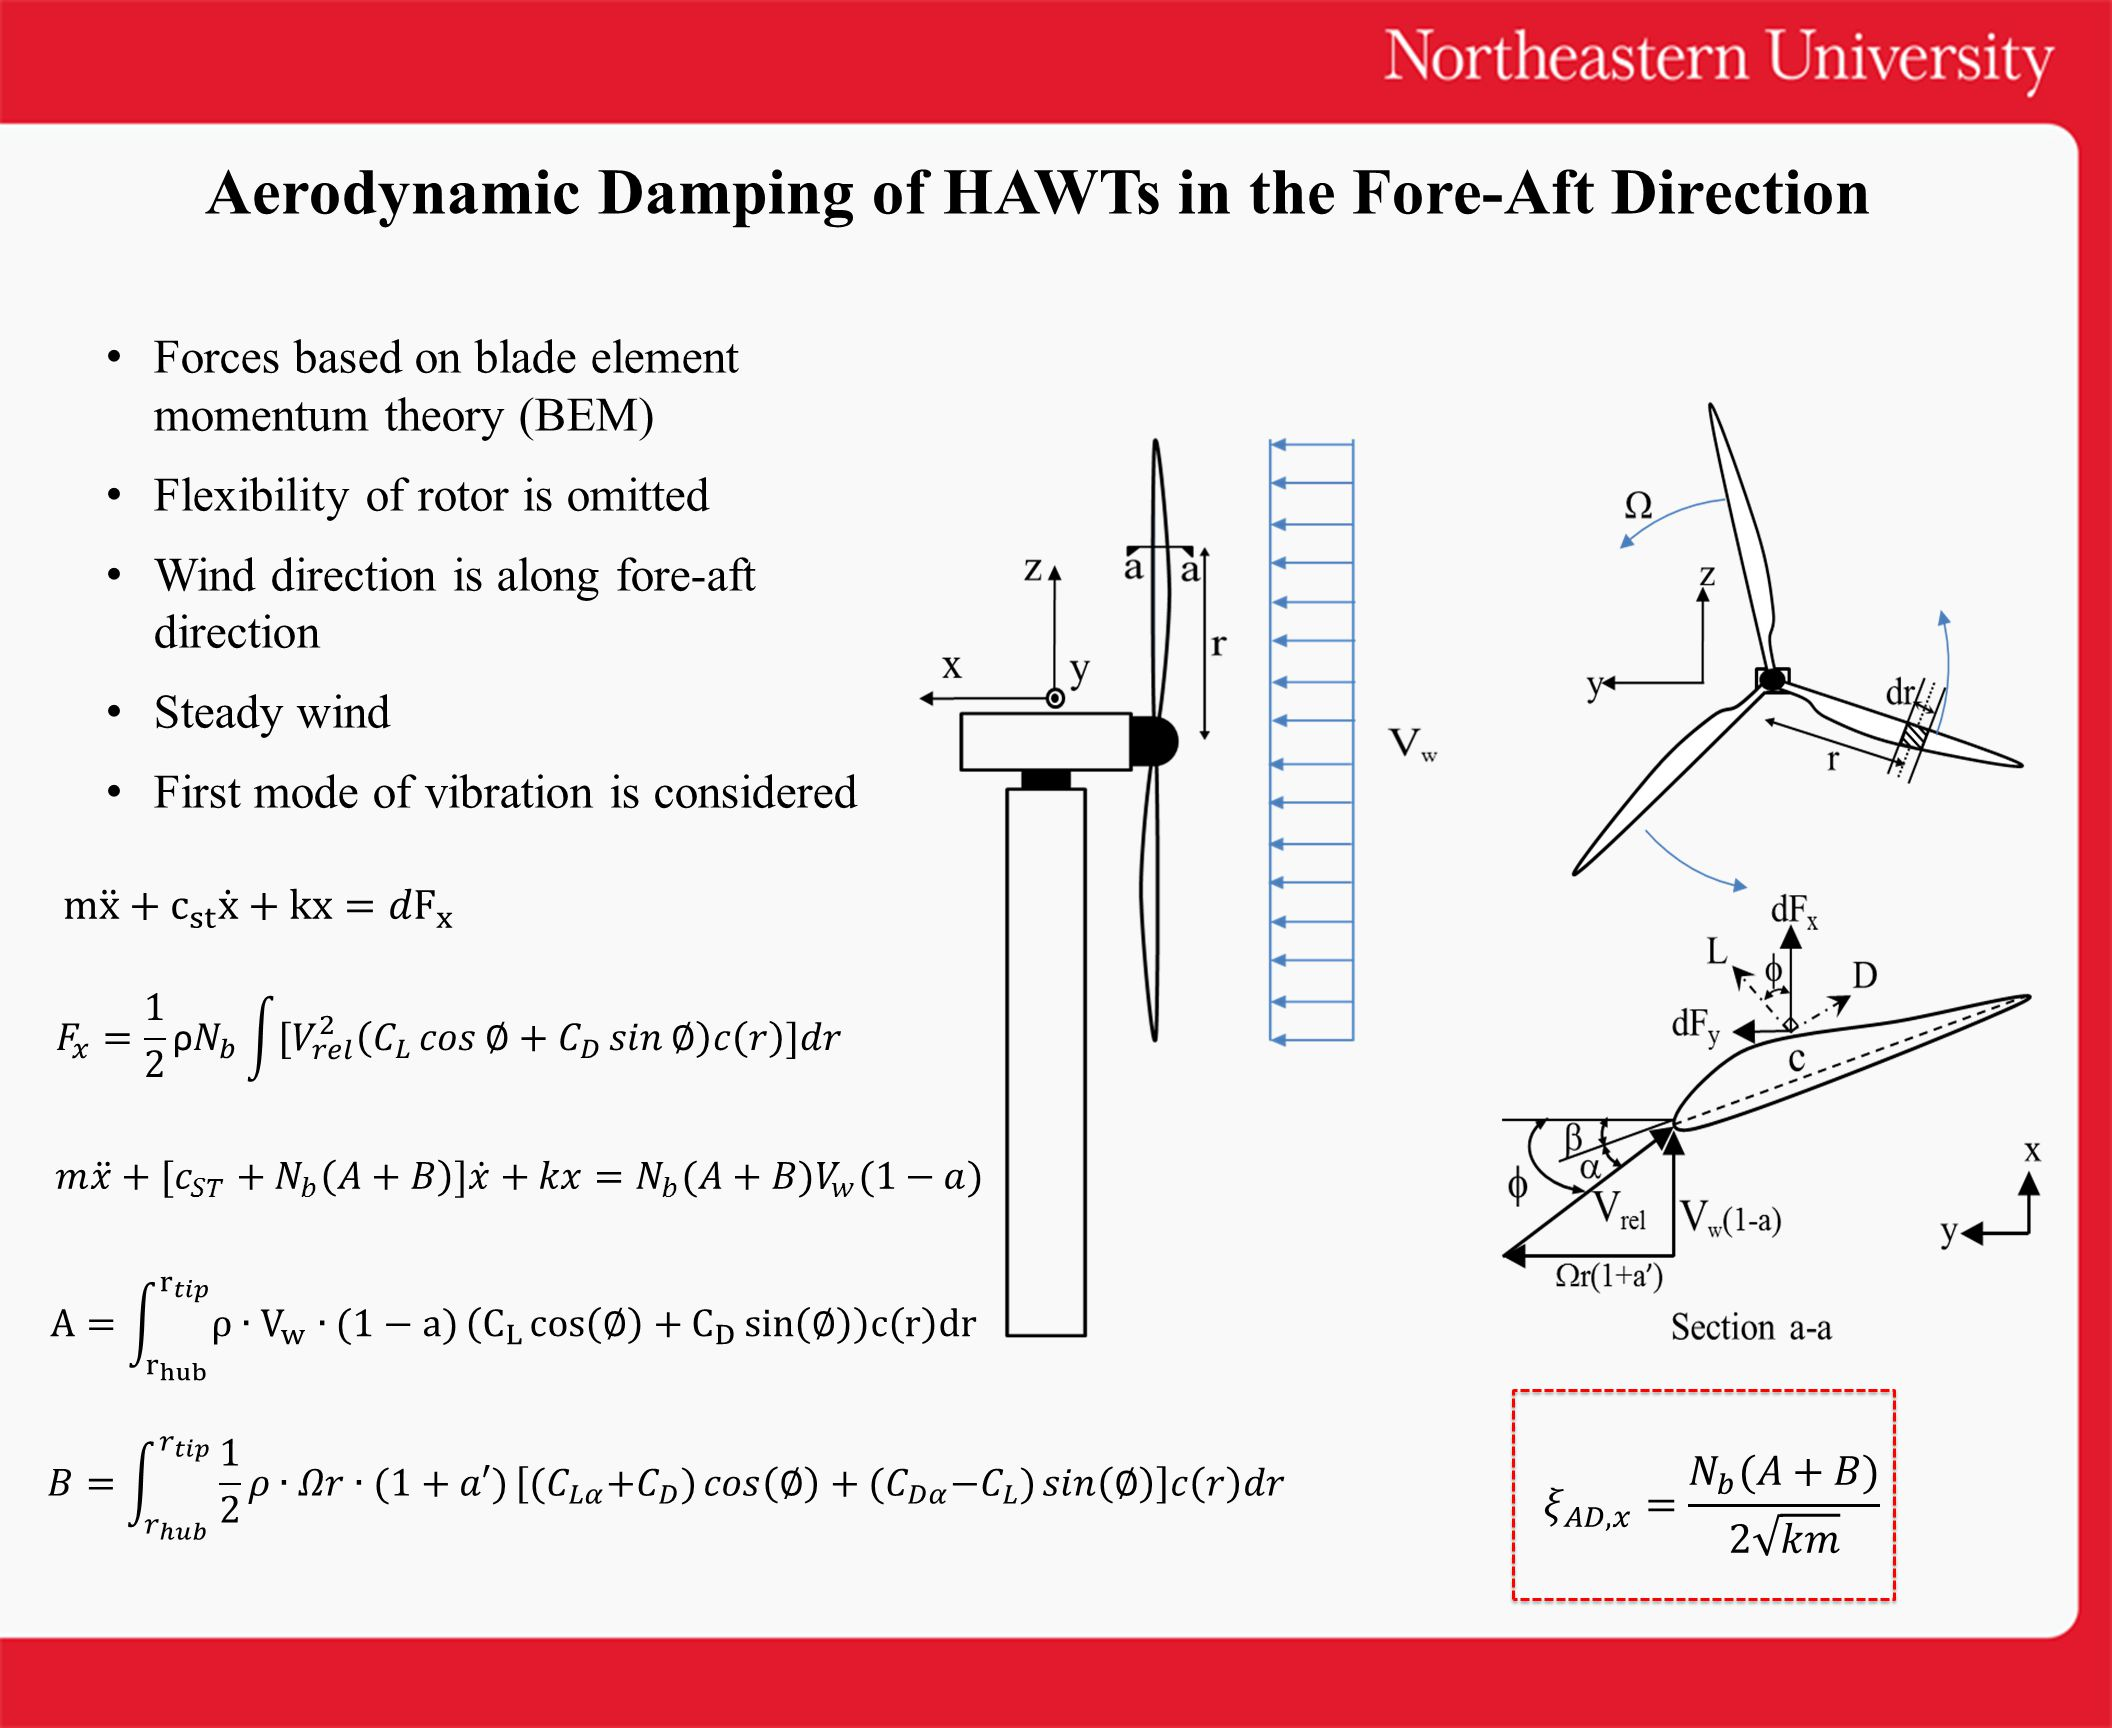 Aerodynamic Damping of HAWTs in the Fore-Aft Direction